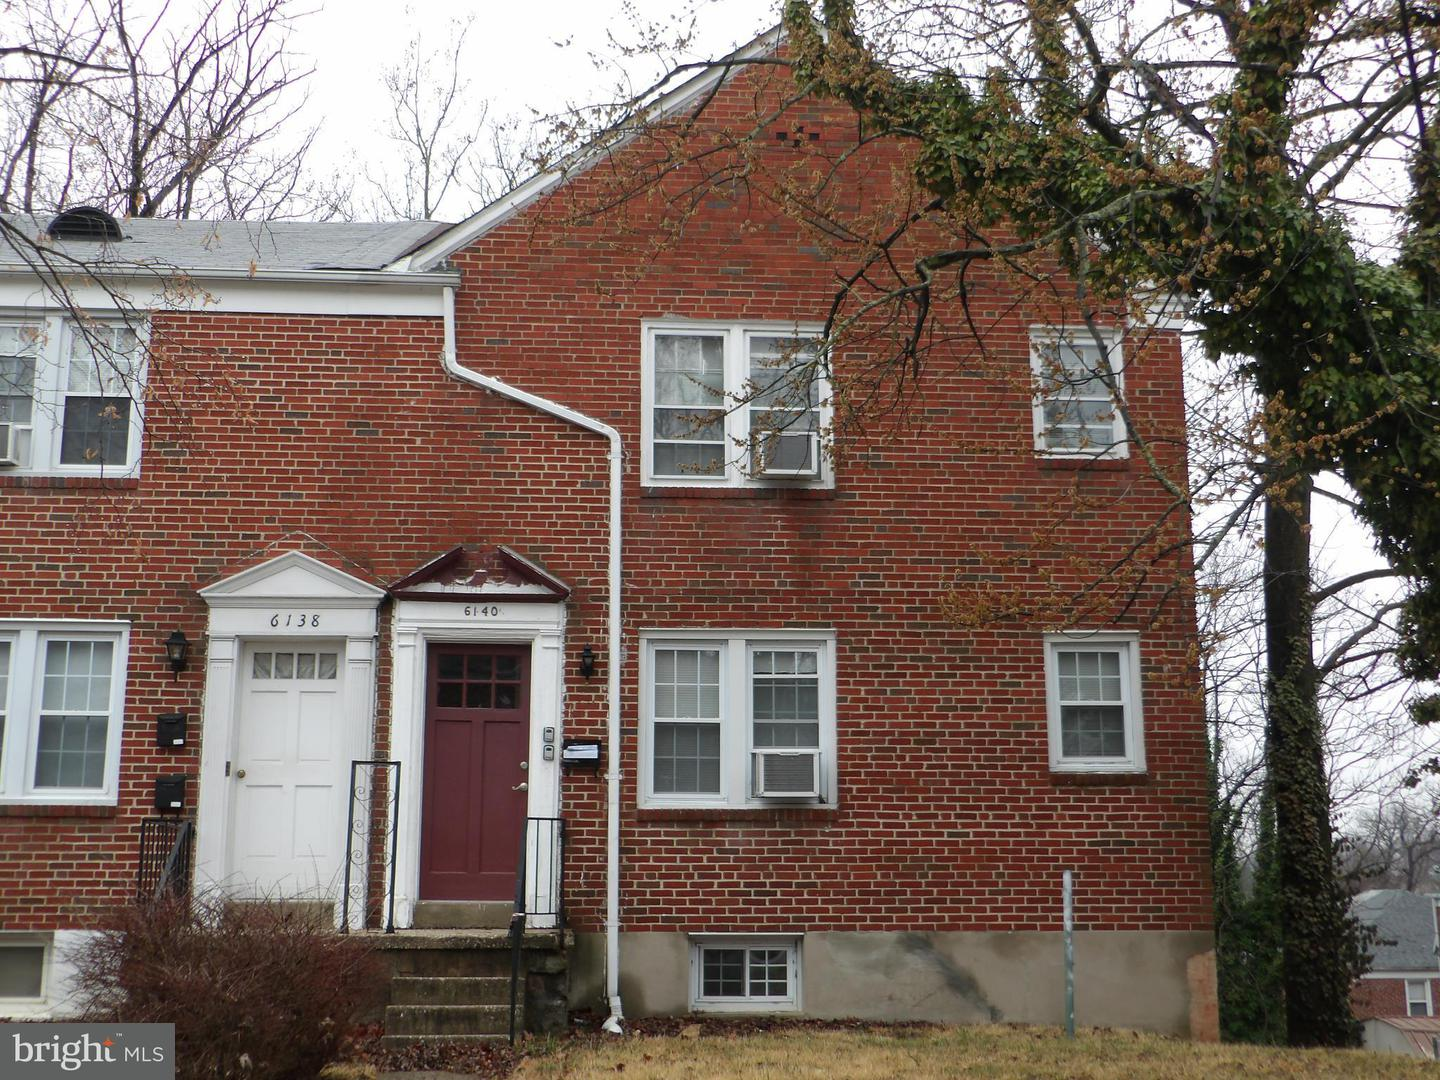 Other Residential for Sale at 6140 Macbeth Dr Baltimore, Maryland 21239 United States